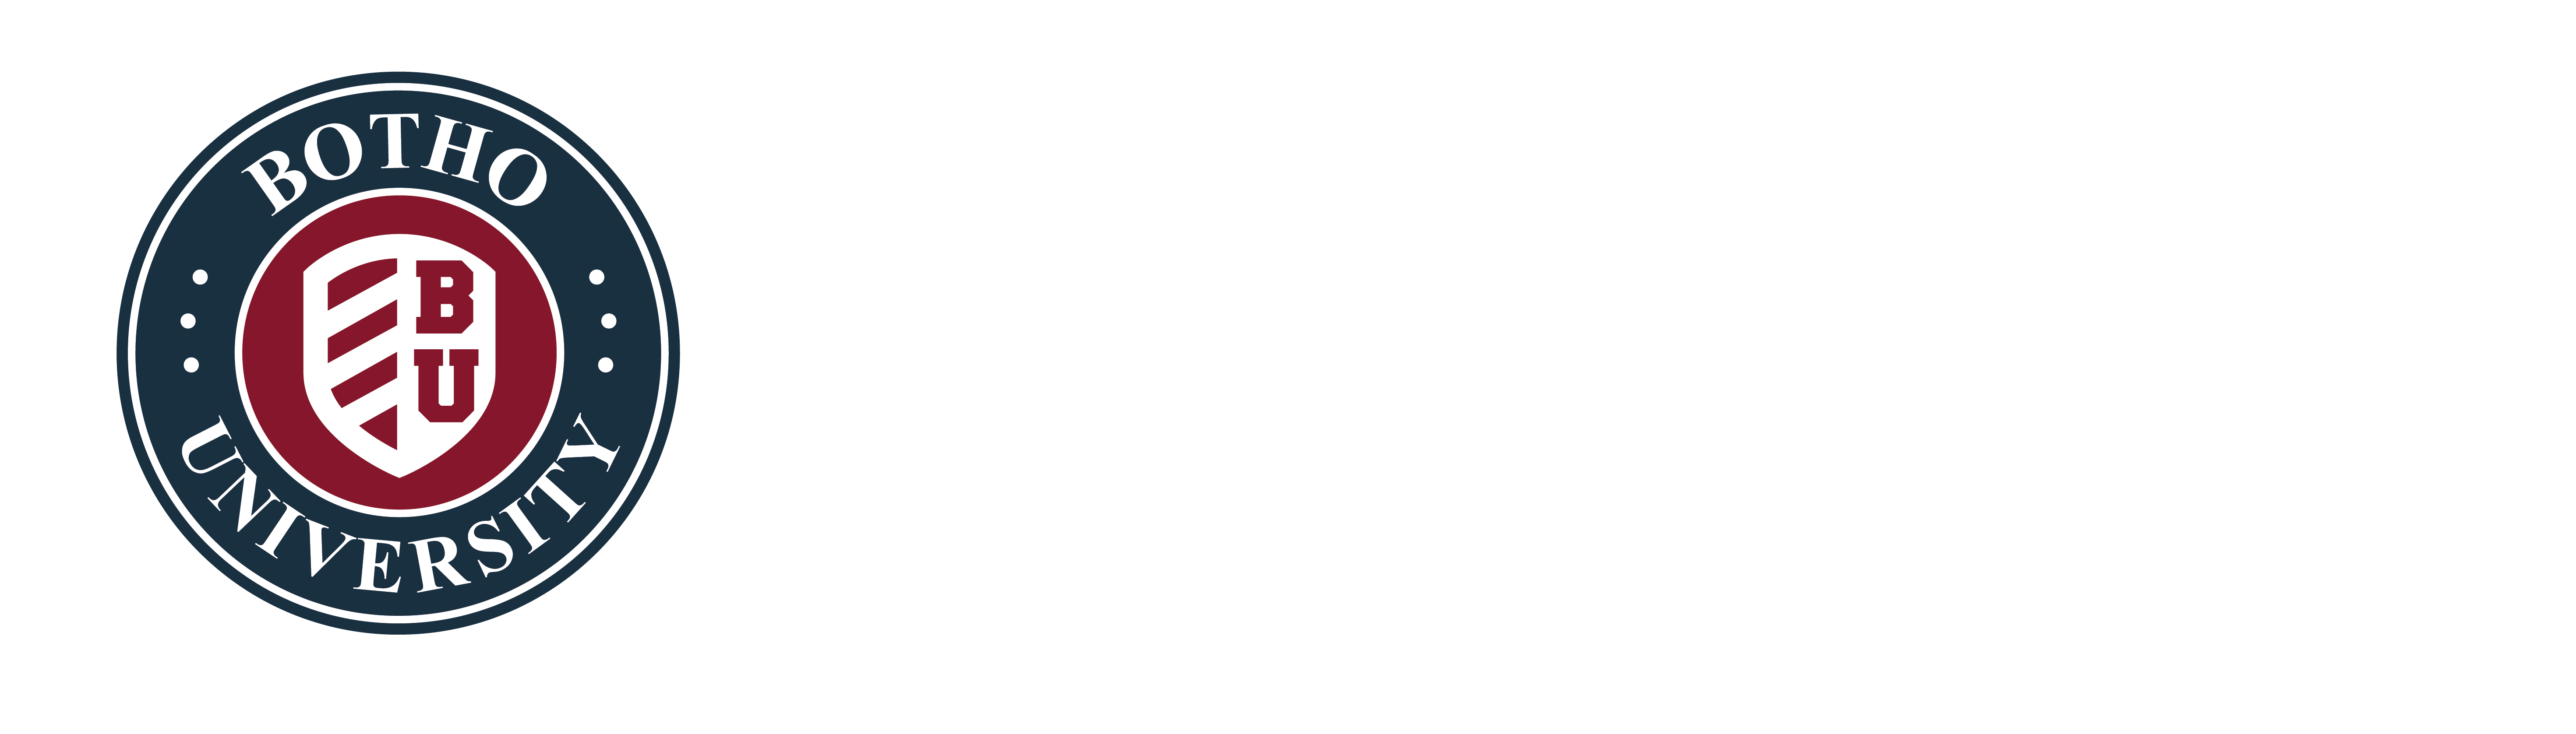 botho university logo